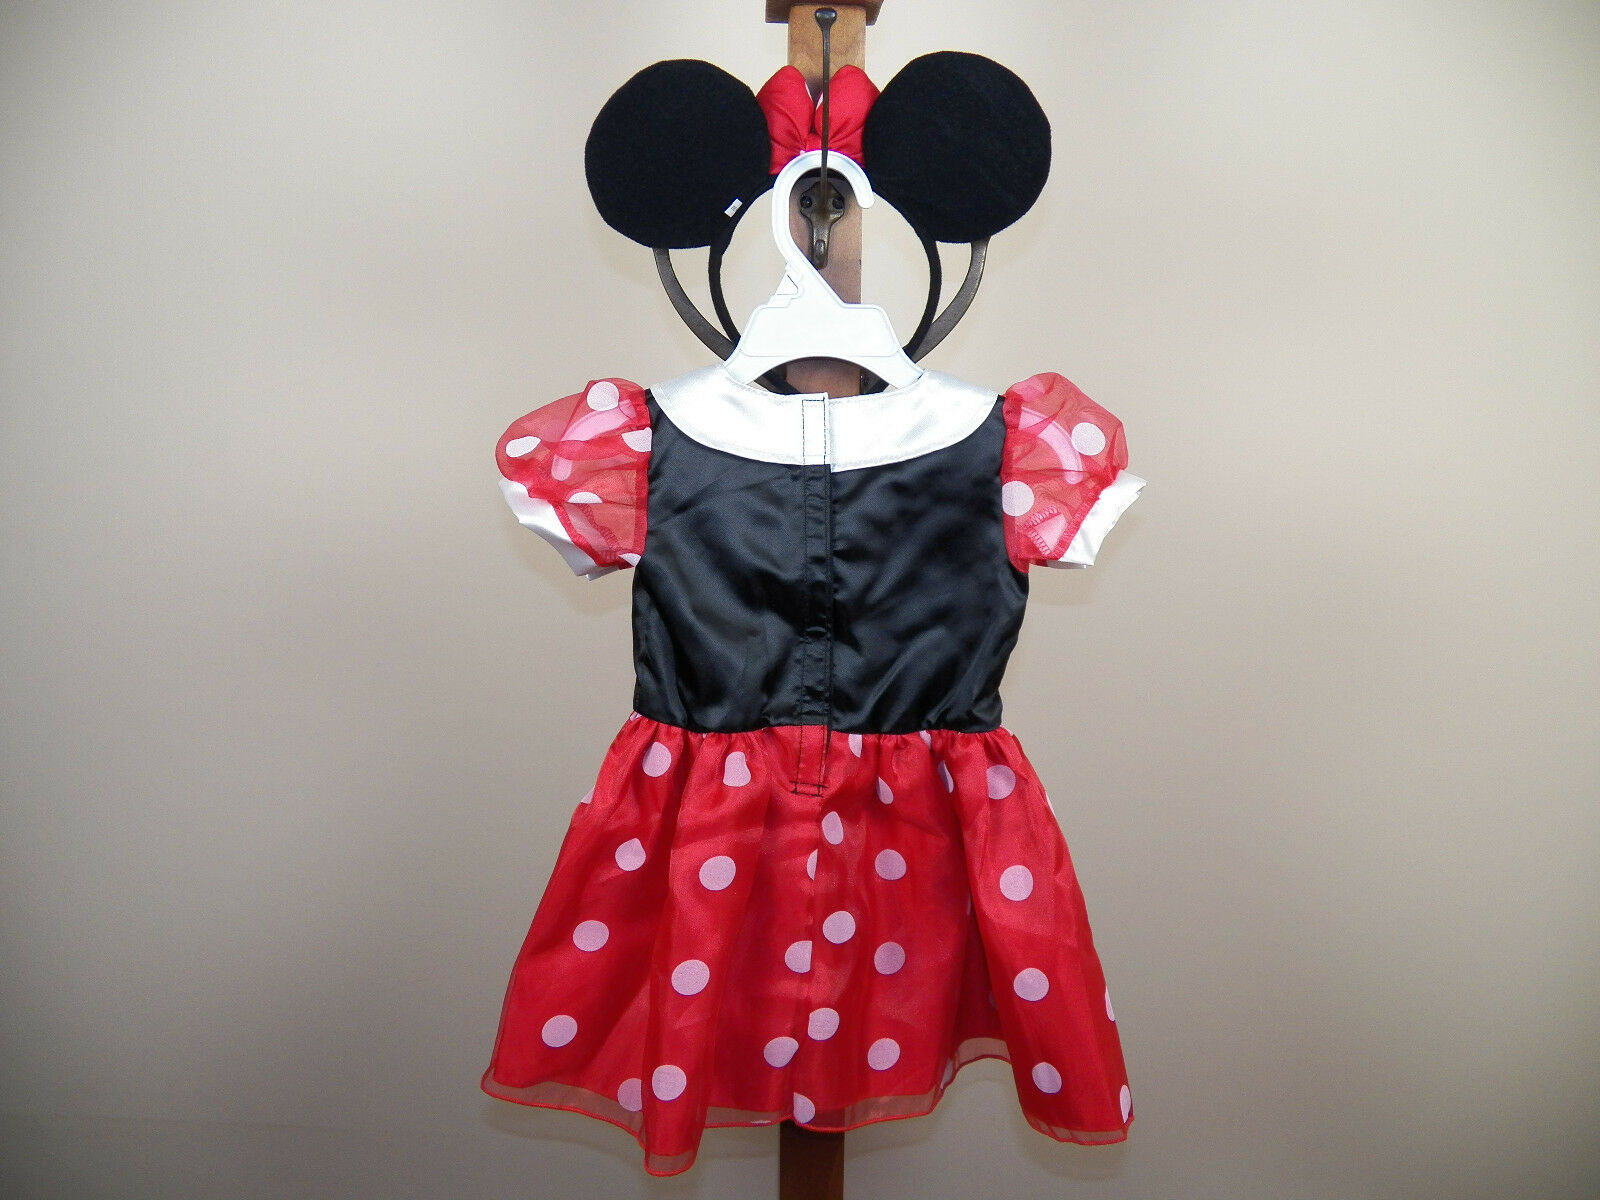 disney baby minnie mouse halloween costume size 3/6m, 6/9m, 12/18m